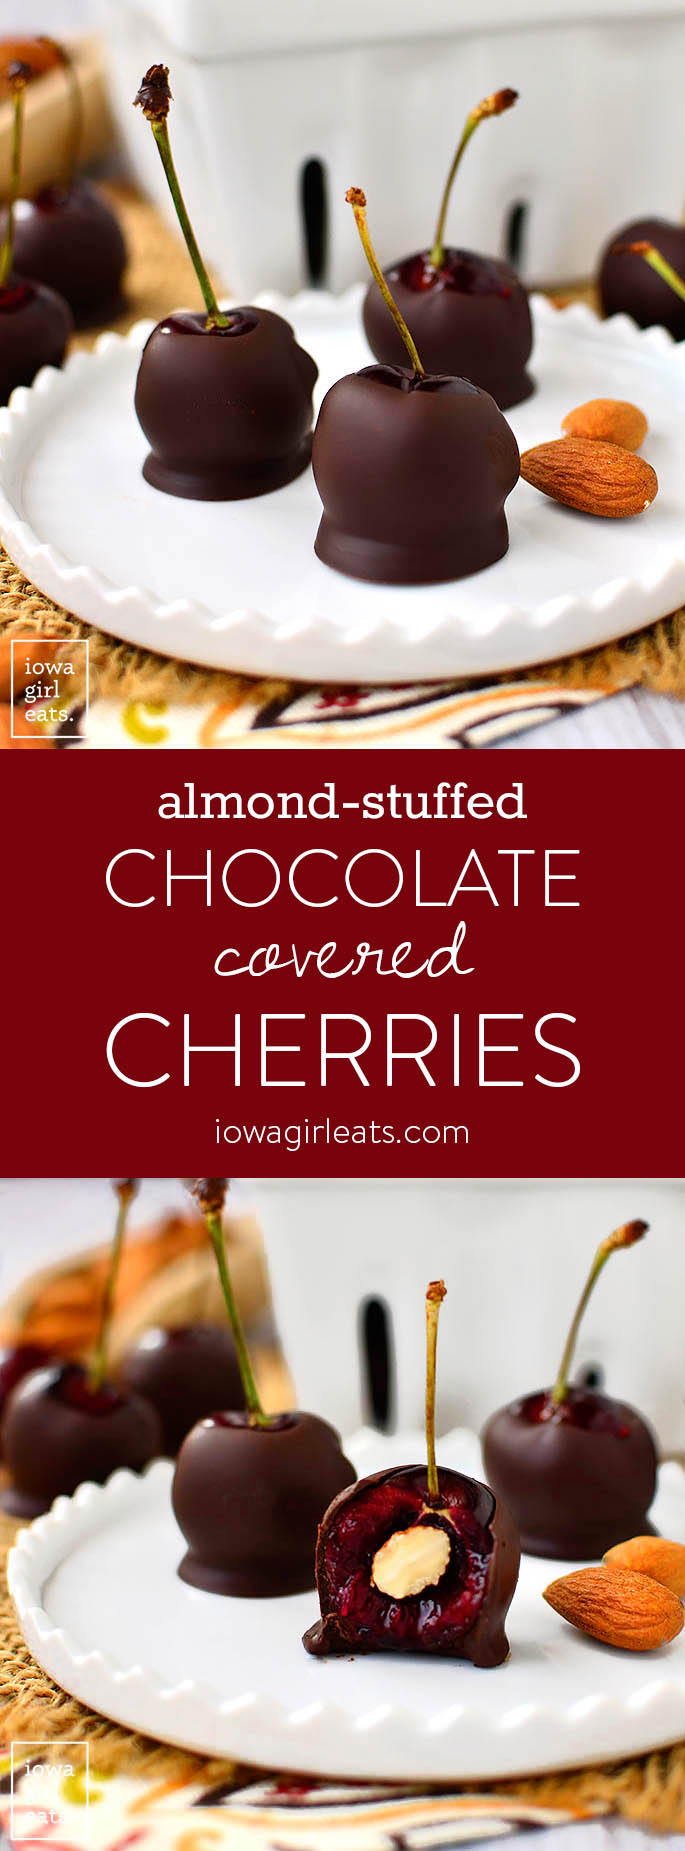 Almond-Stuffed Chocolate Covered Cherries is a simple, 3 ingredient, gluten-free dessert recipe that's ready in minutes! | iowagirleats.com